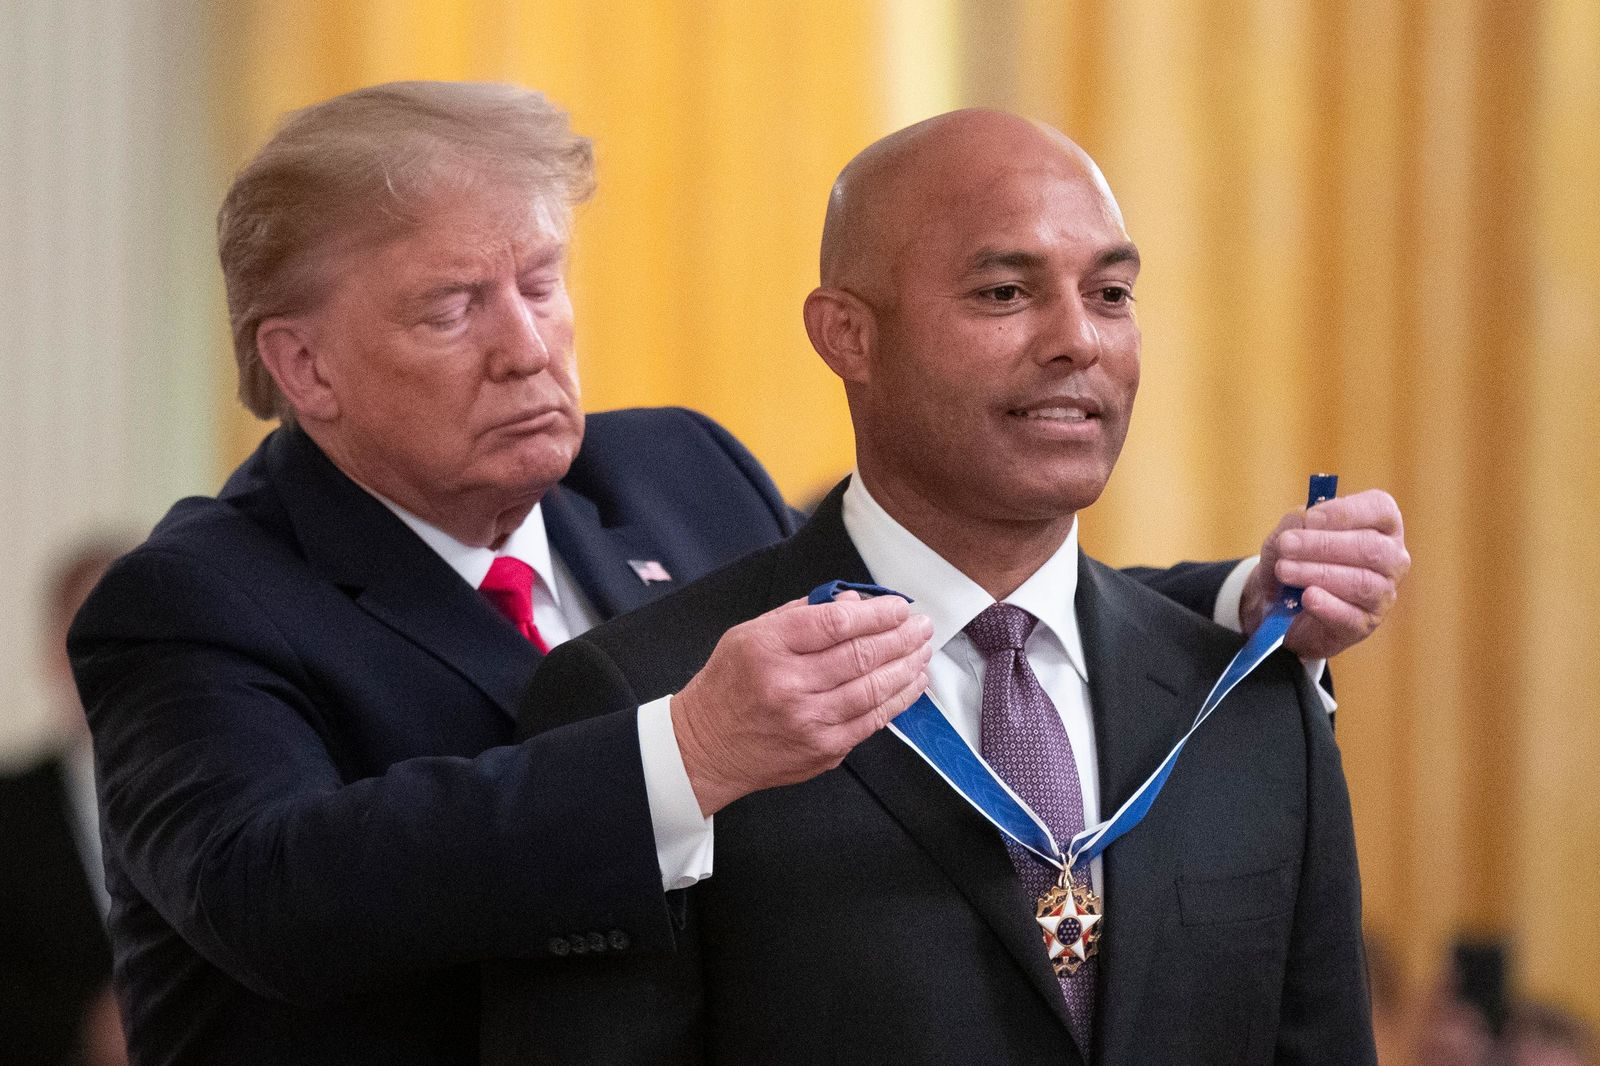 President Donald Trump presents the Presidential Medal of Freedom to former New York Yankees baseball pitcher Mariano Rivera, in the East Room of the White House, Monday, Sept. 16, 2019, in Washington. (AP Photo/Manuel Balce Ceneta)